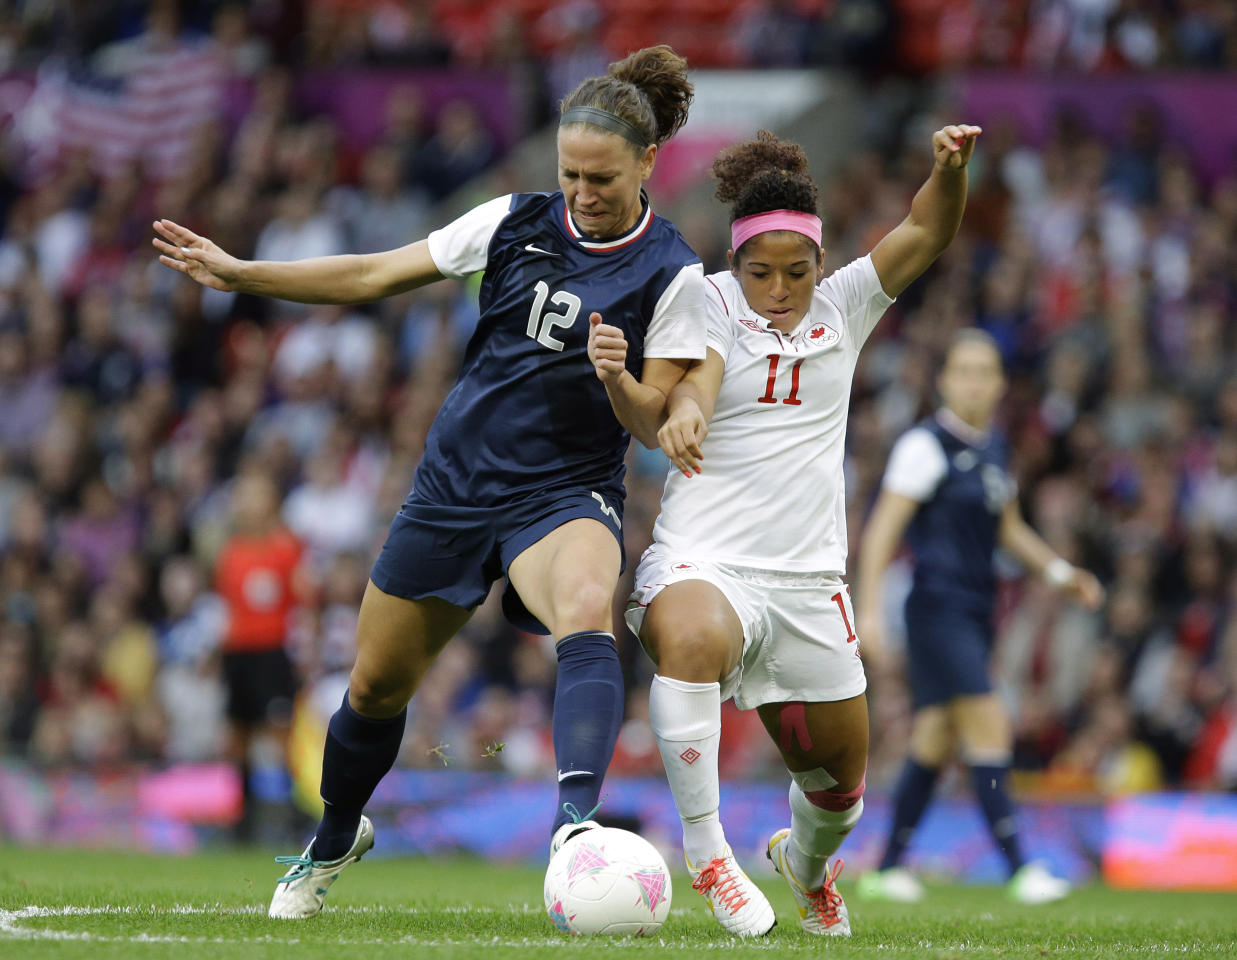 Canada's Desiree Scott, right, battles for the ball against the United States' Lauren Cheney, left, during their semifinal women's soccer match at the 2012 London Summer Olympics, in Manchester, England, Monday, Aug. 6, 2012. (AP Photo/Hussein Malla)